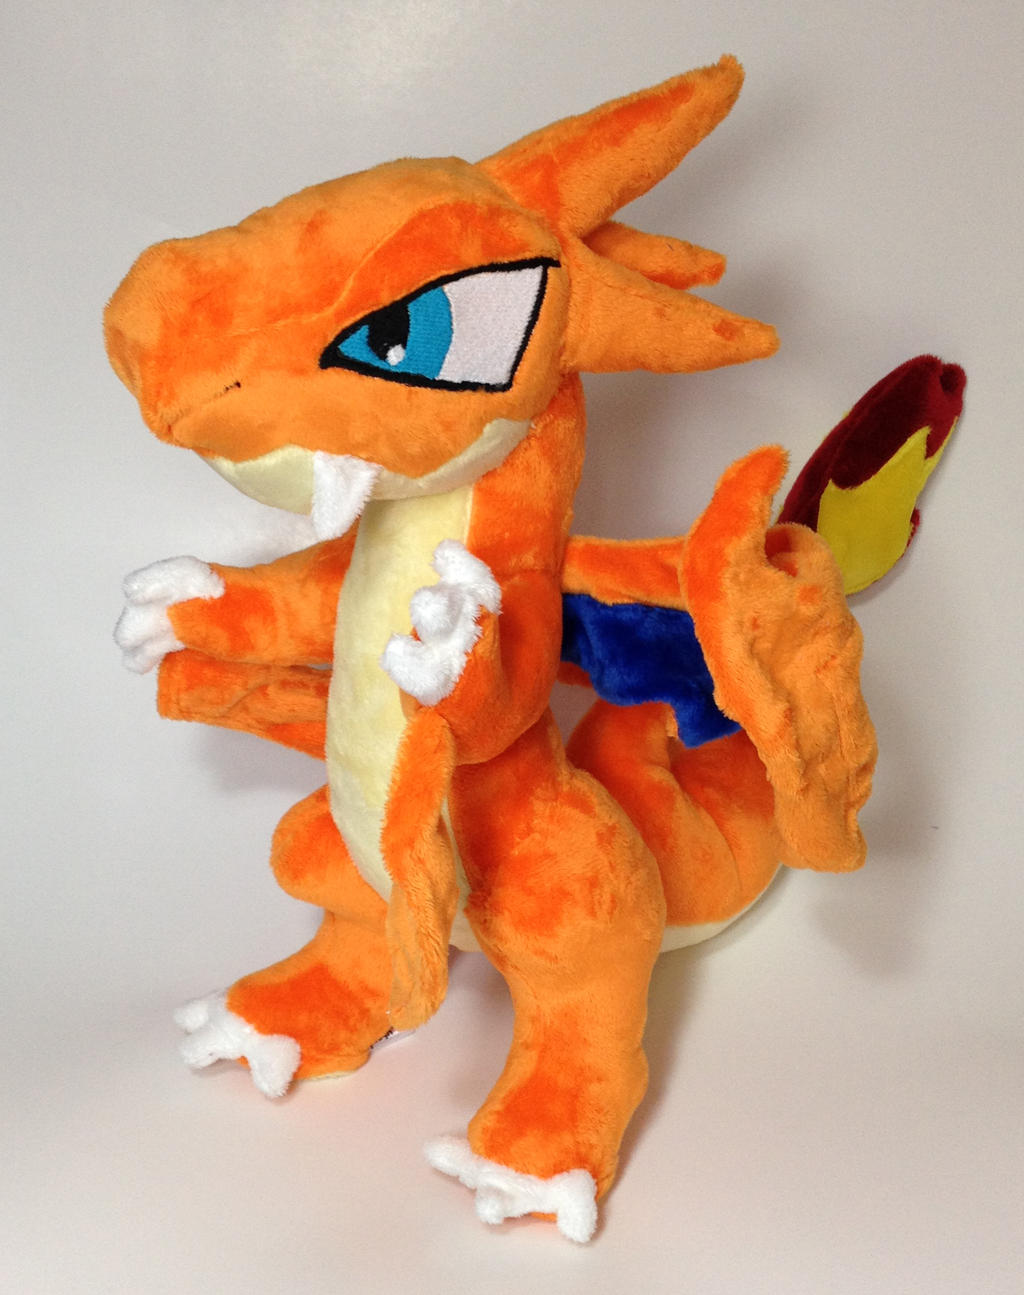 Pokemon - Mega Charizard Y custom plush version 2 by Kitamon